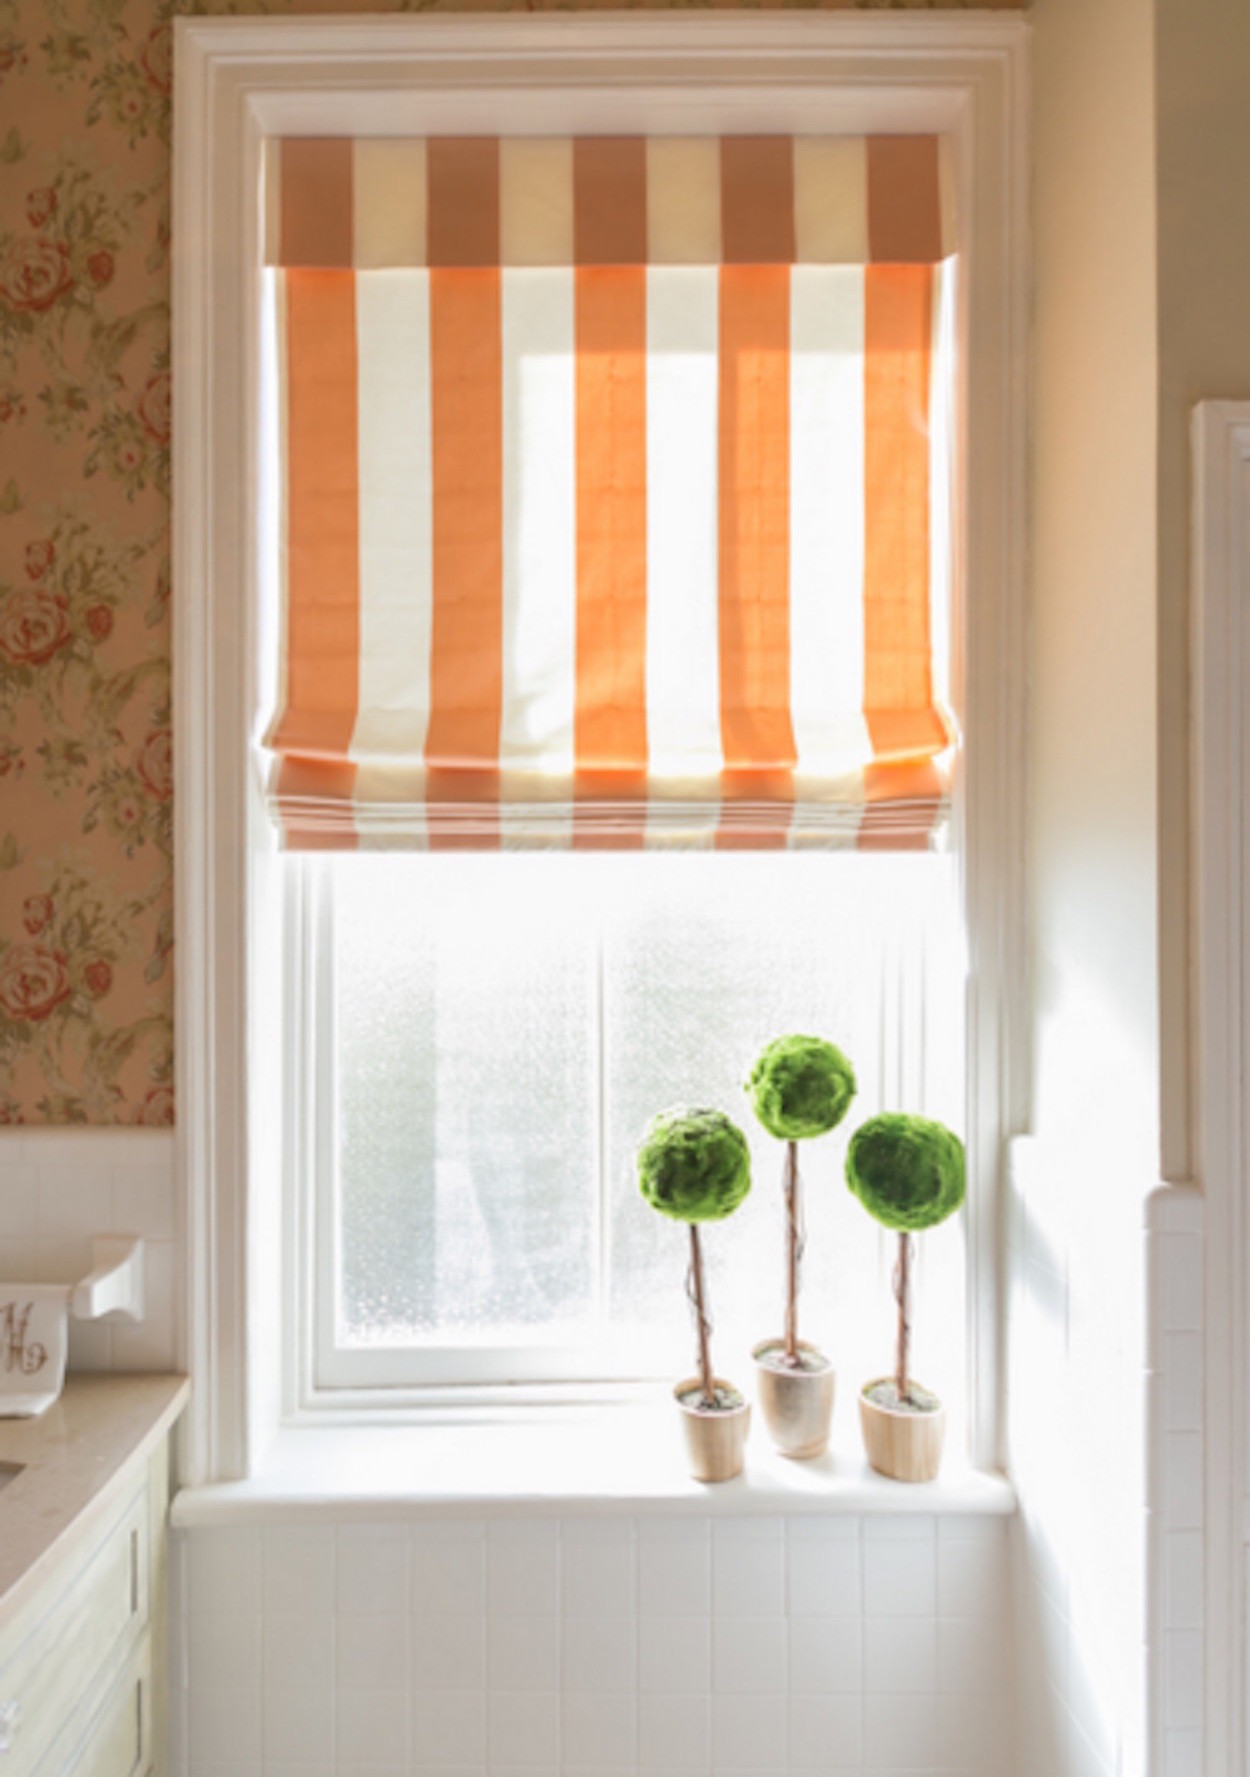 7 Different Bathroom Window Treatments You Might Not Have Thought